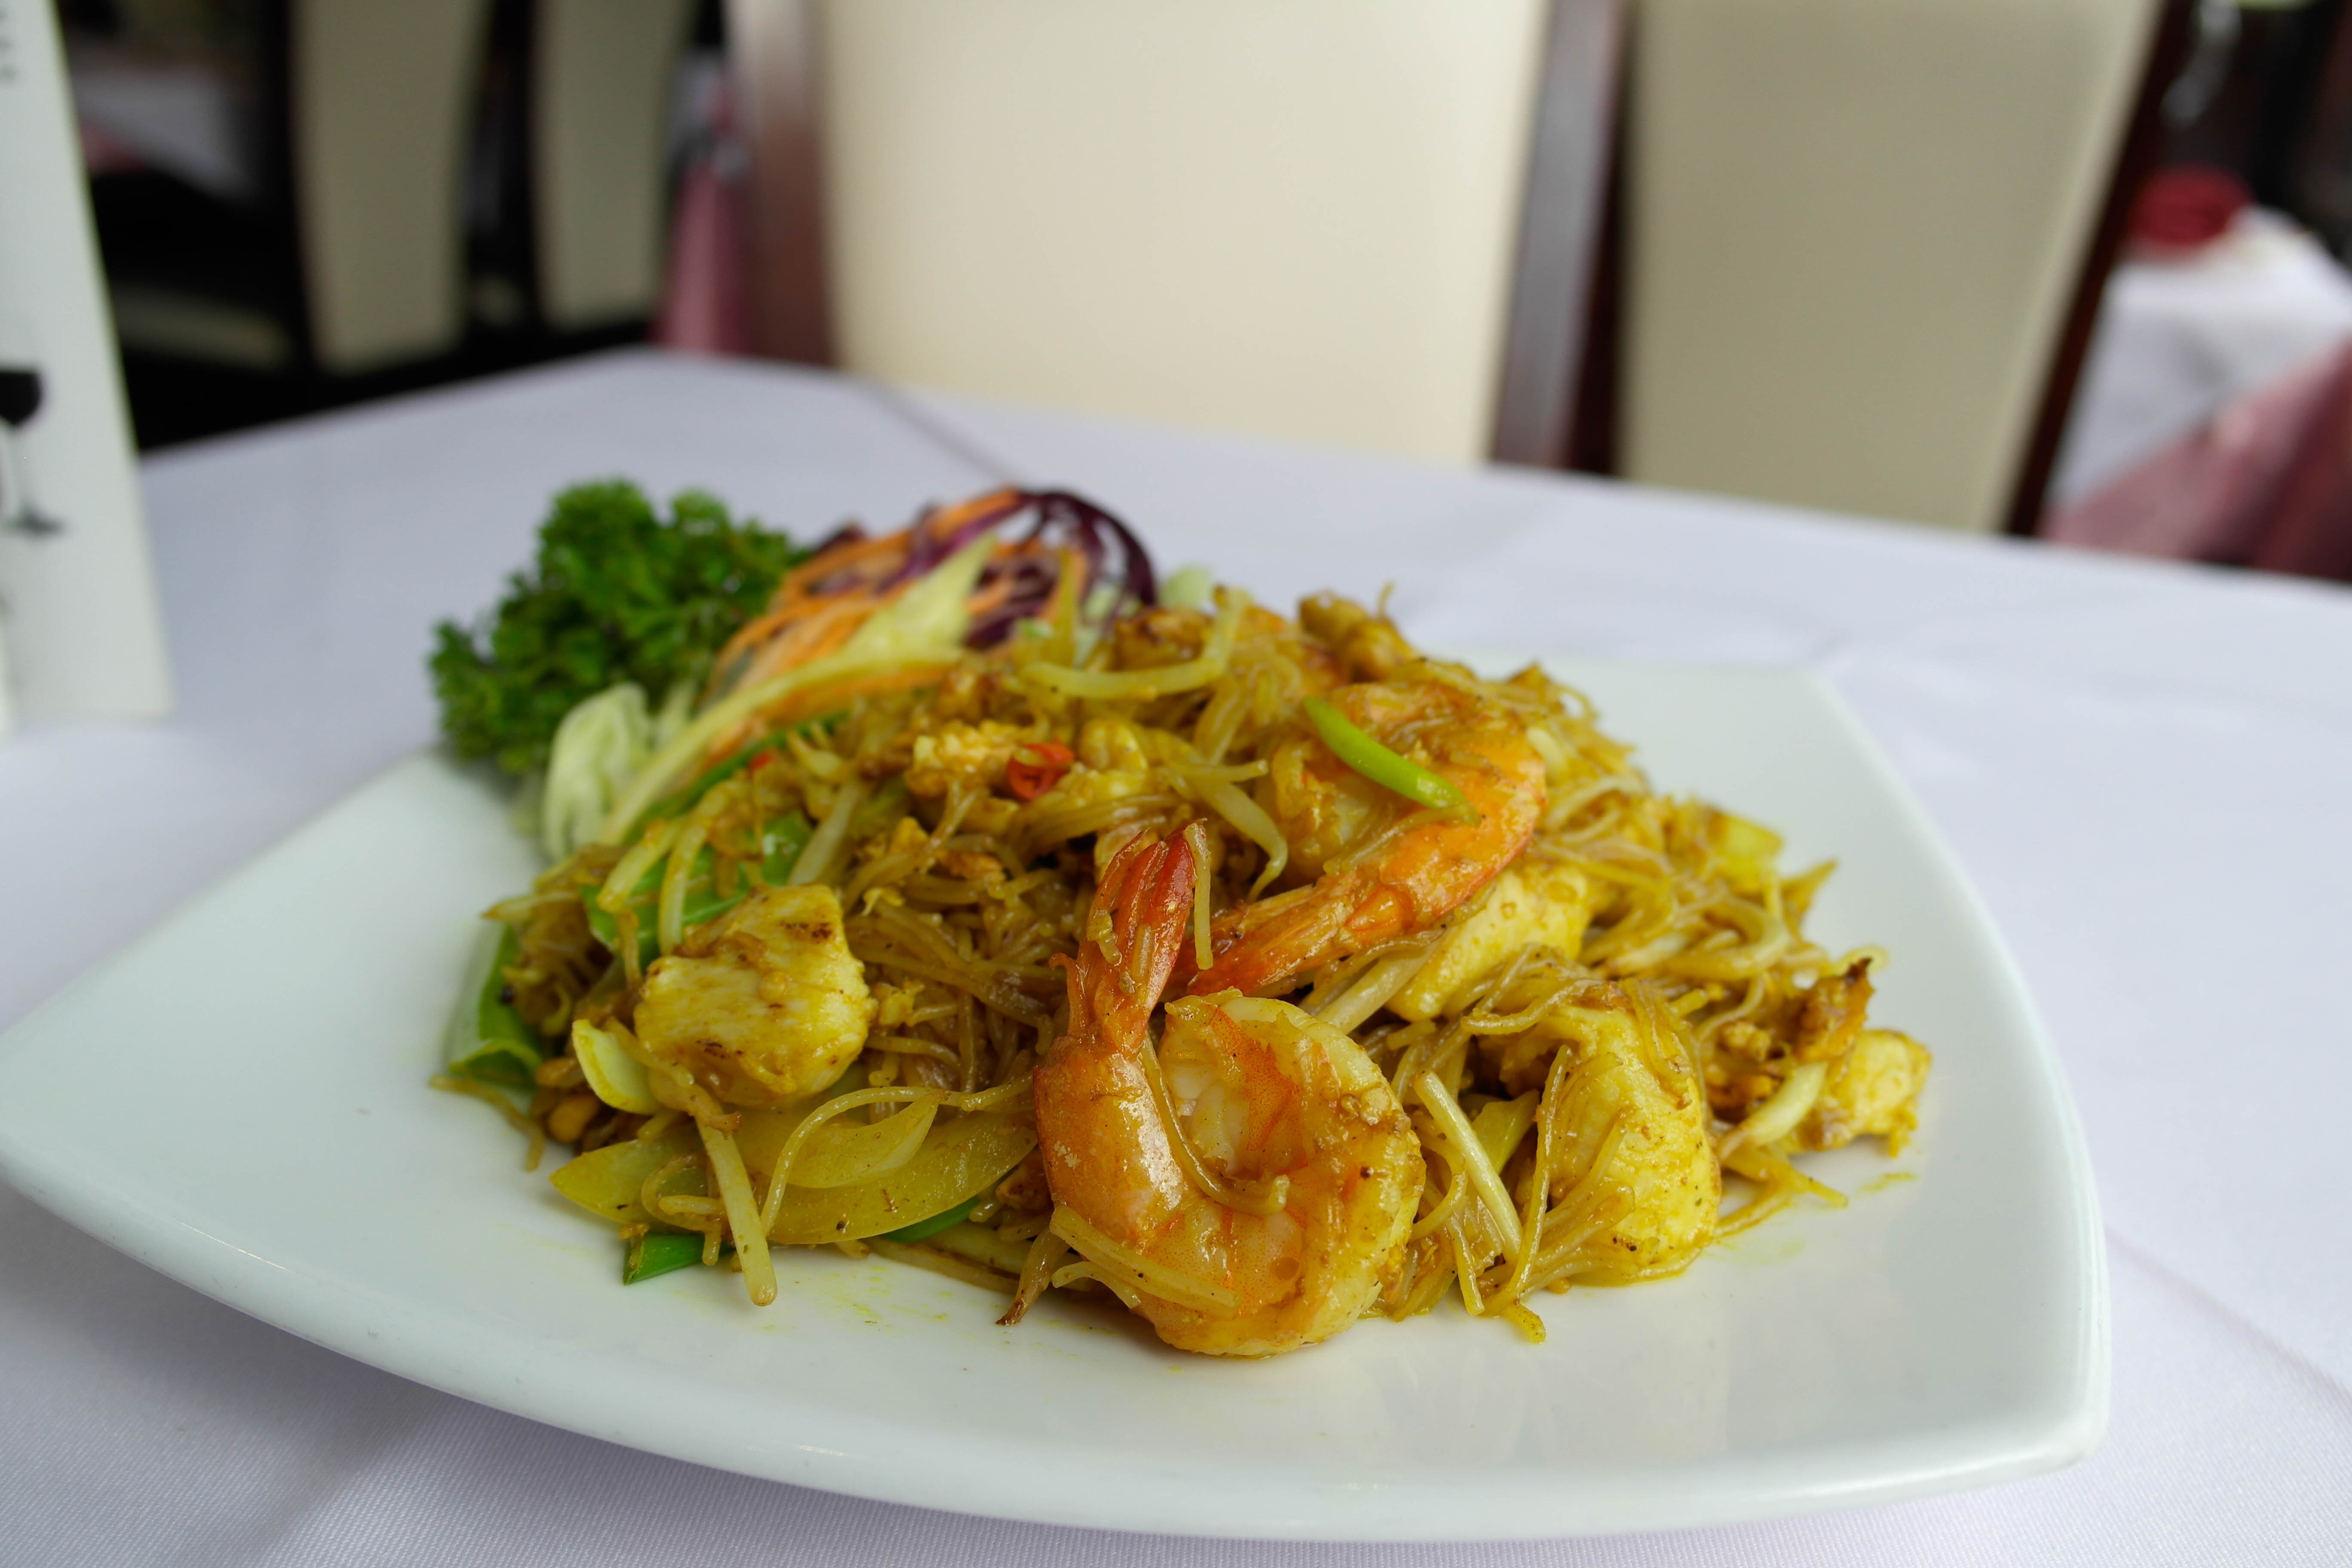 Mantanahthai thai food in south norwood se25 for Authentic thai cuisine portland or